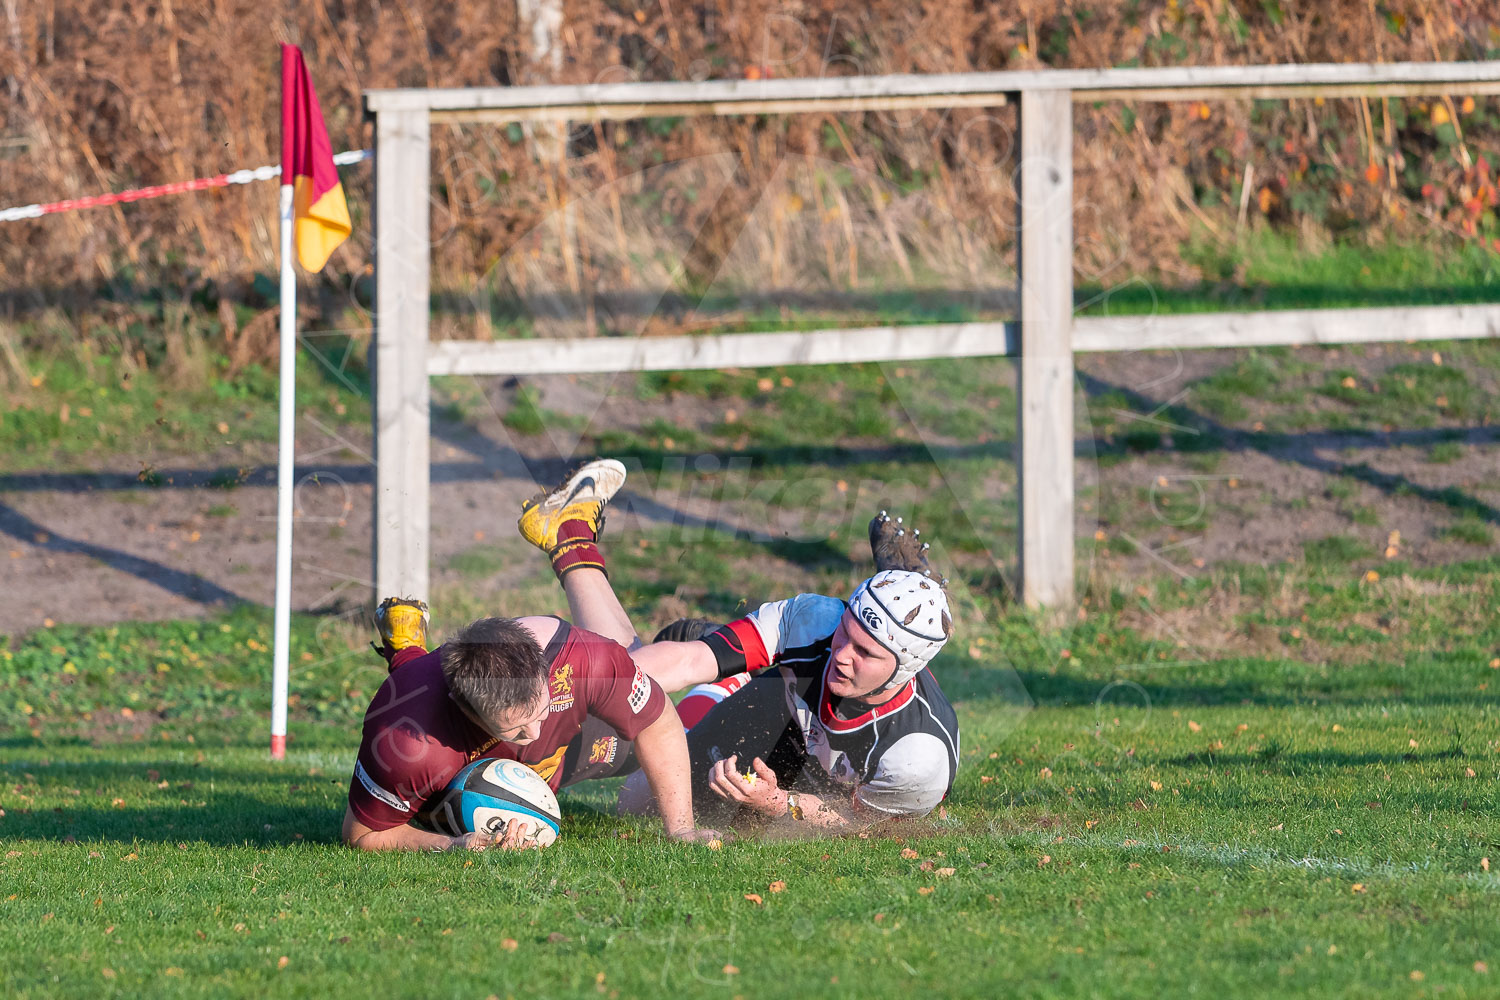 Billy Ward clears the line despite a high challenge (Photo: Iain Frankish, Actuance Photography)